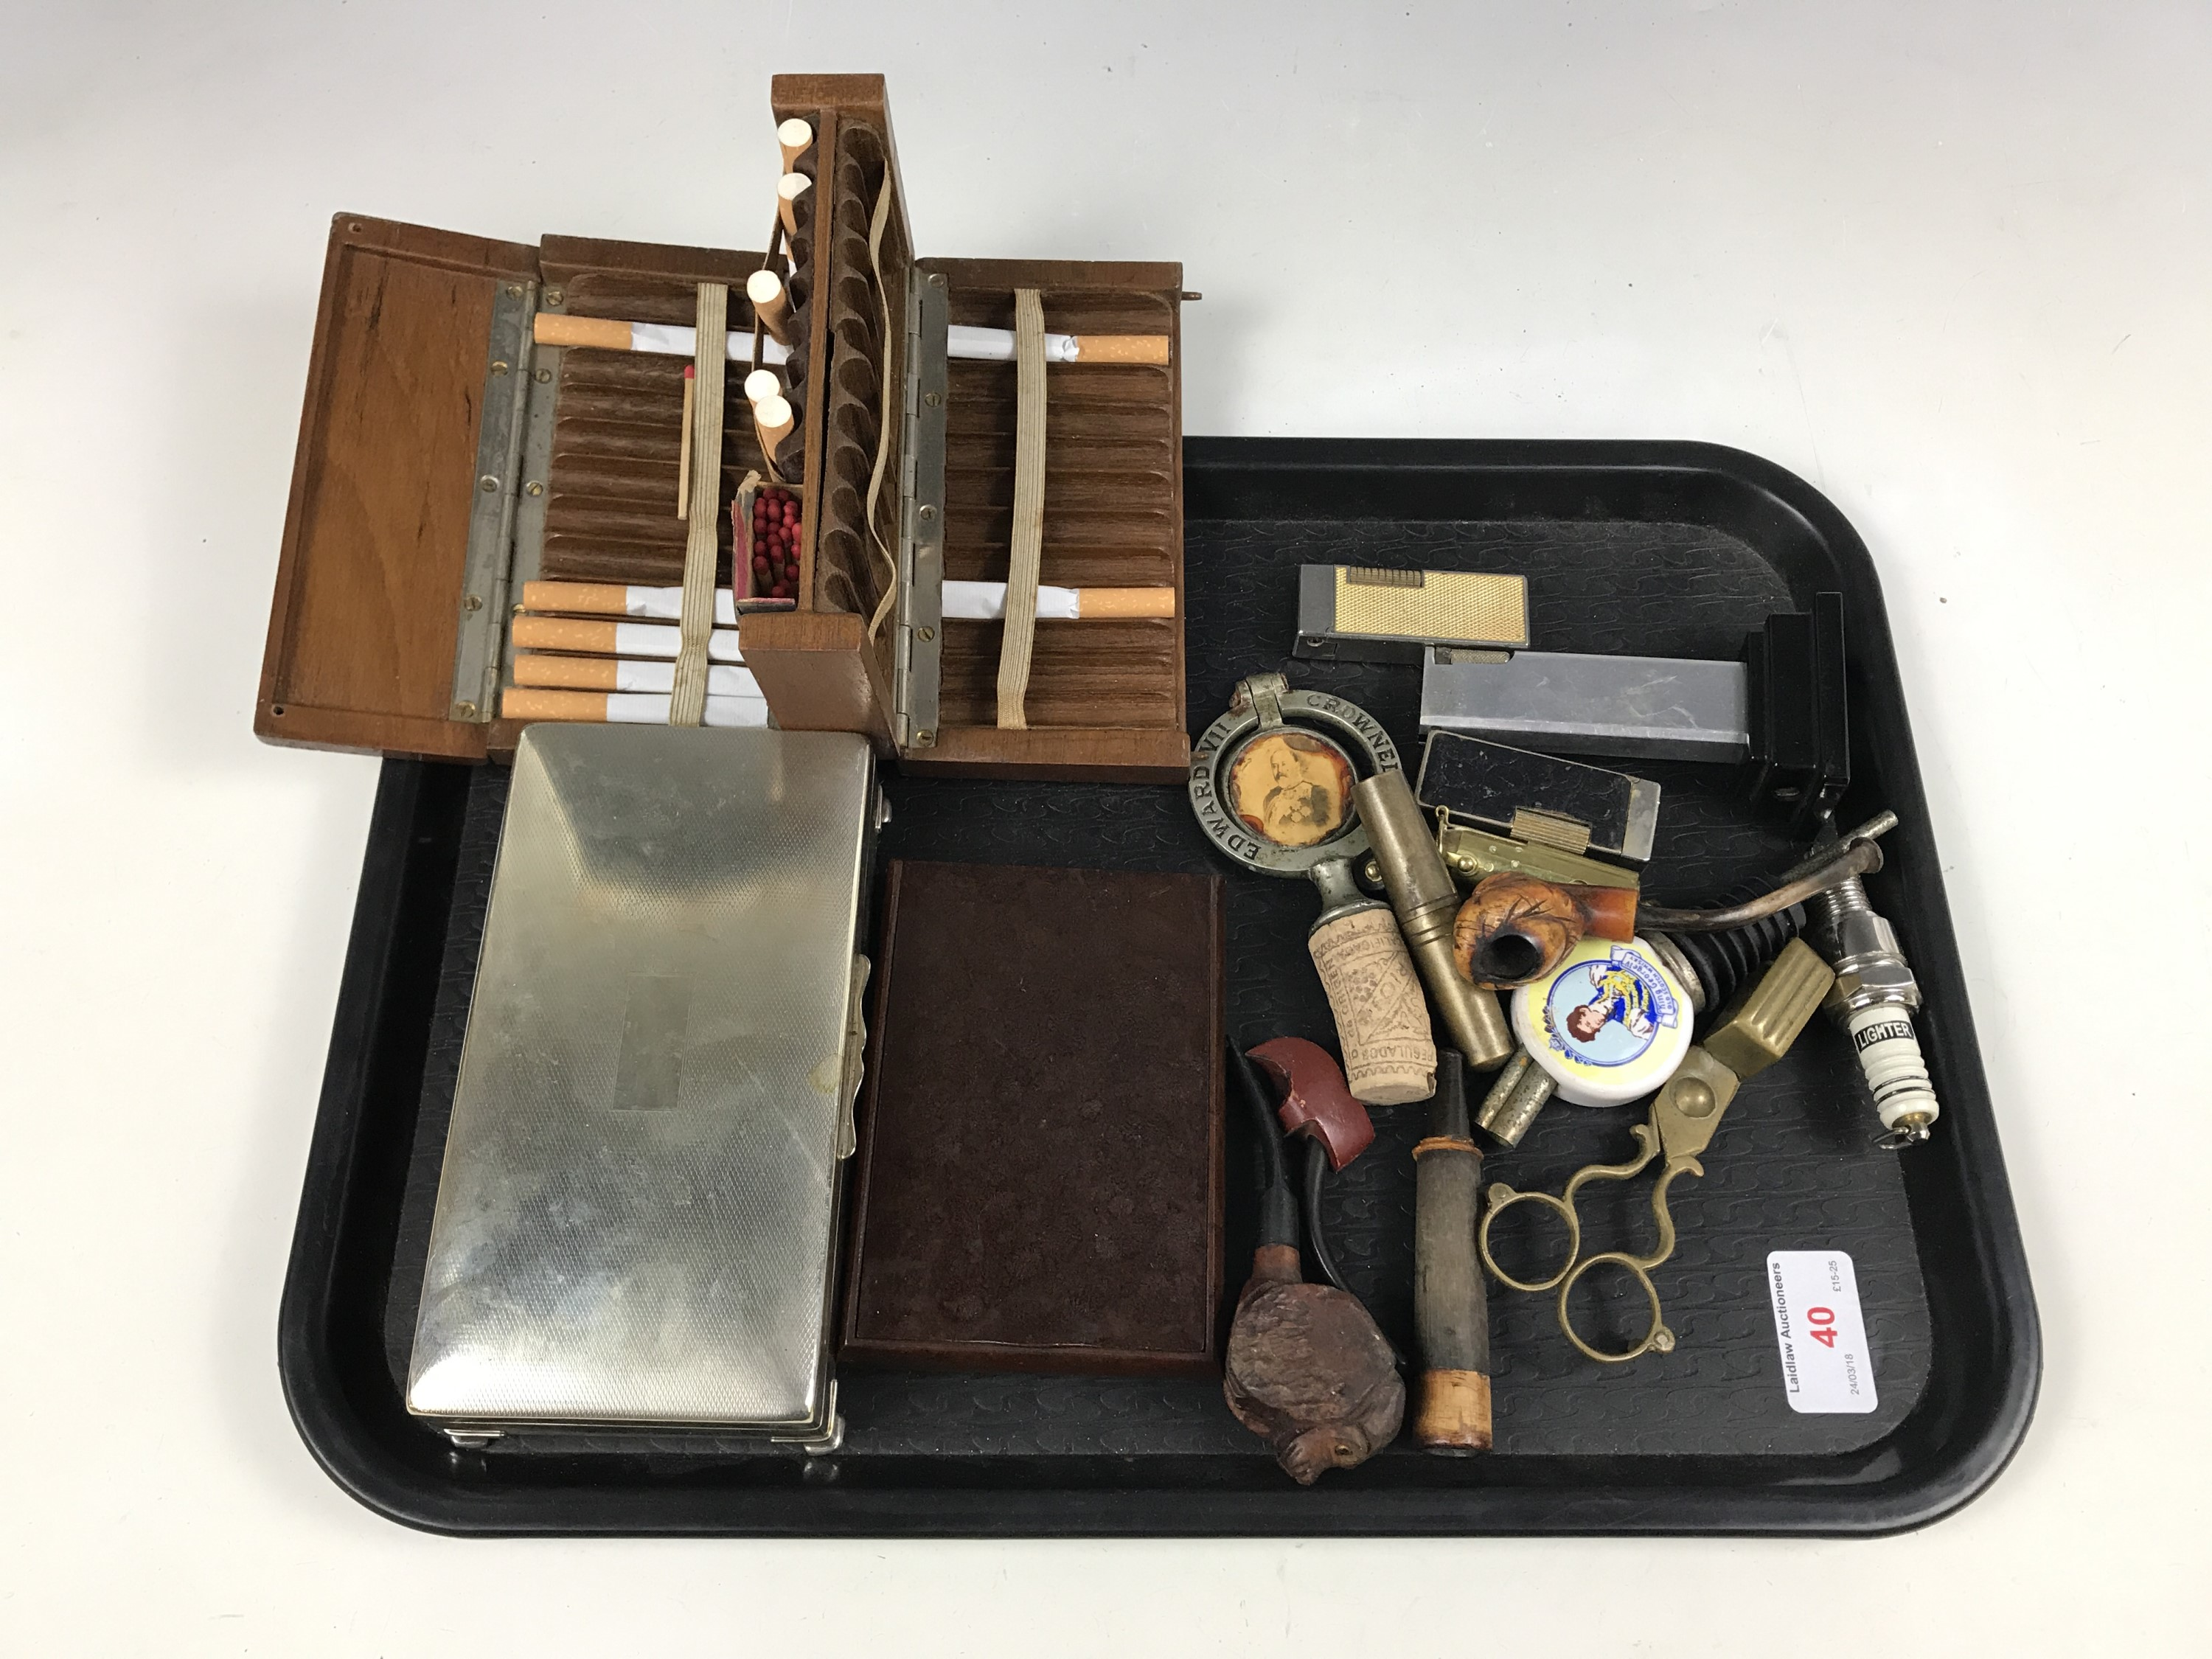 Lot 40 - Sundry collectors' items including commemorative bottle stoppers, a corkscrew set, meerschaum and